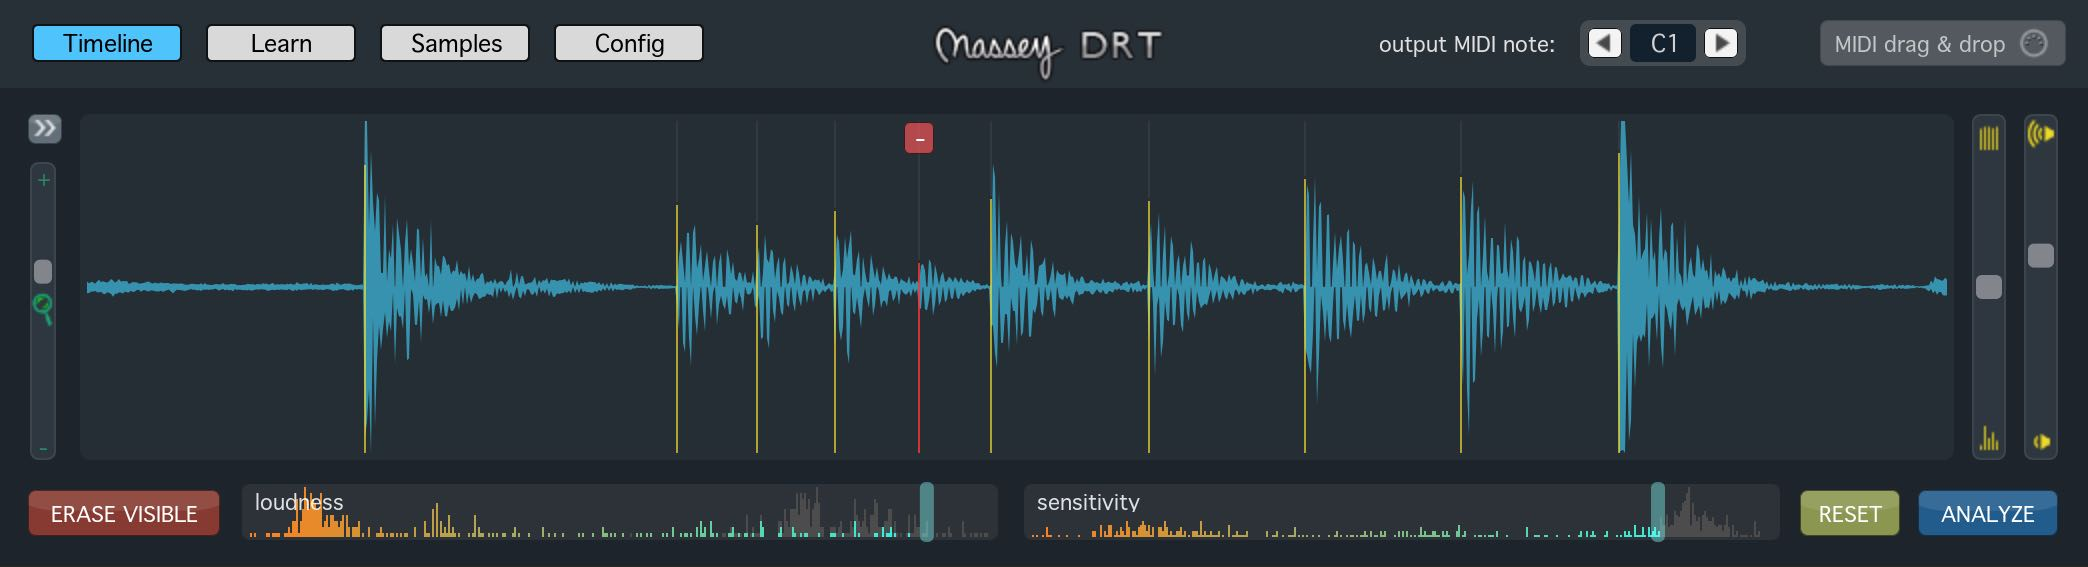 full DRT massey drum replacement plug-ins for pro tools.jpg